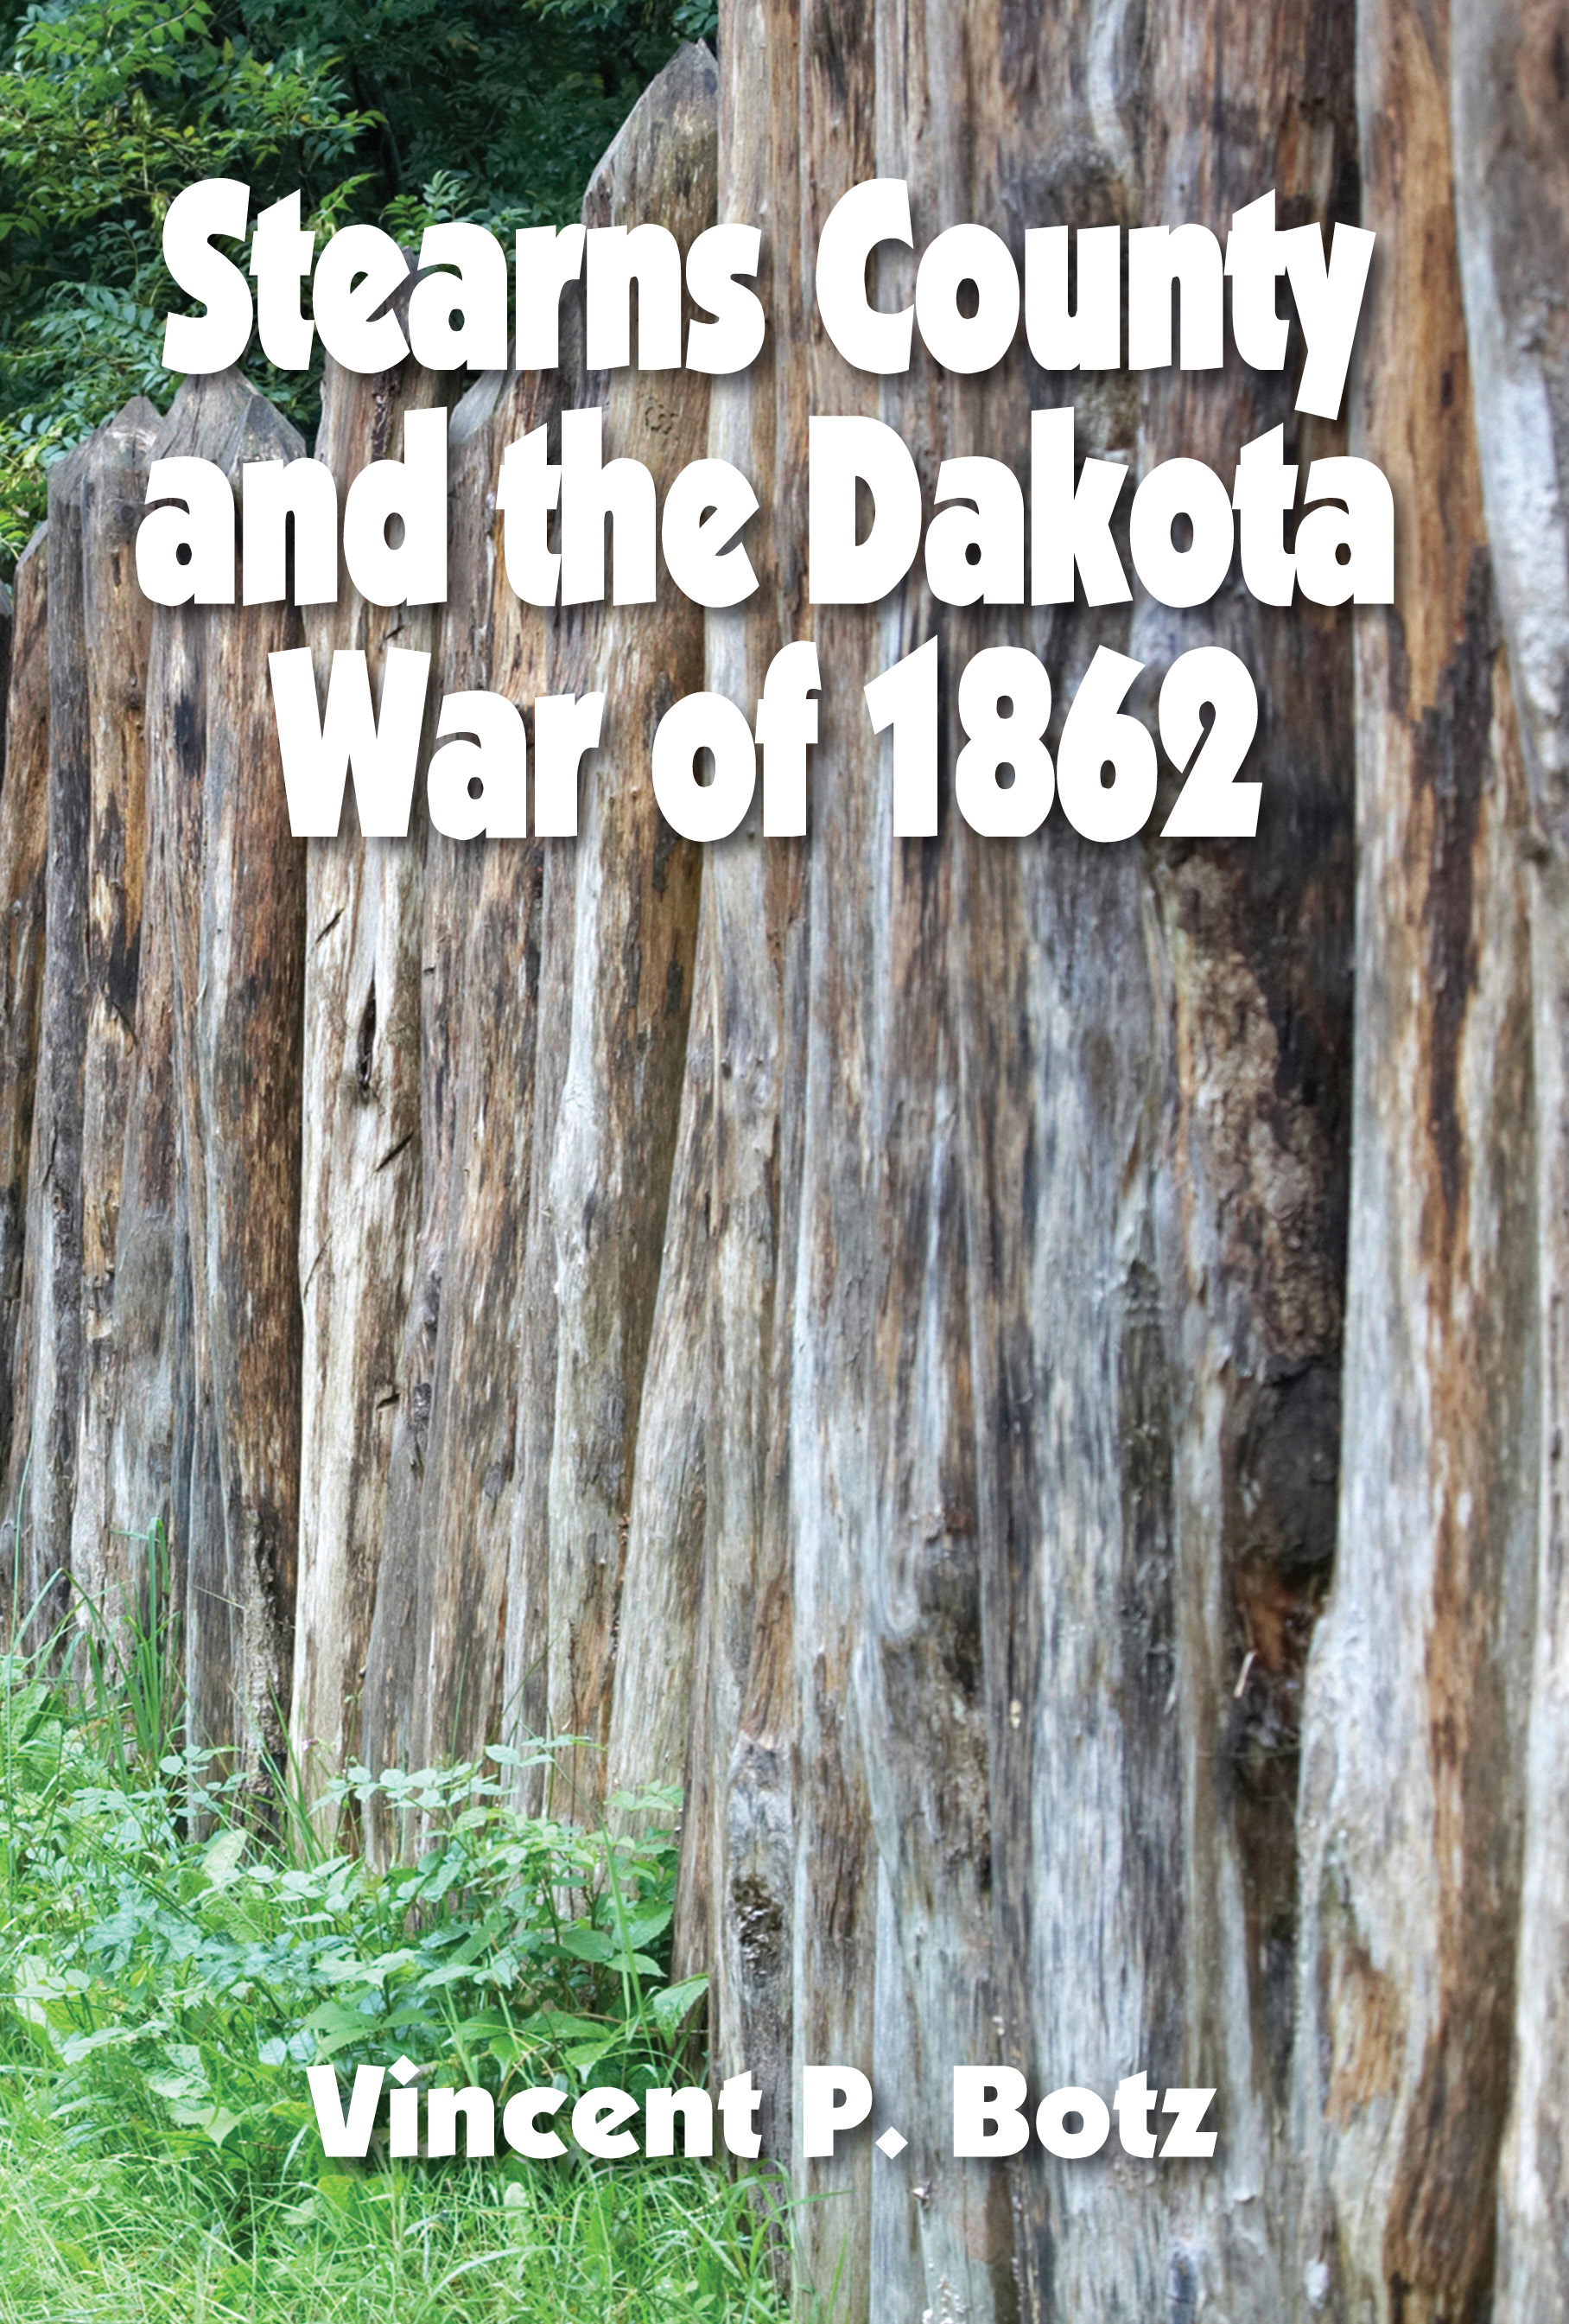 Stearns County and the Dakota War of 1862